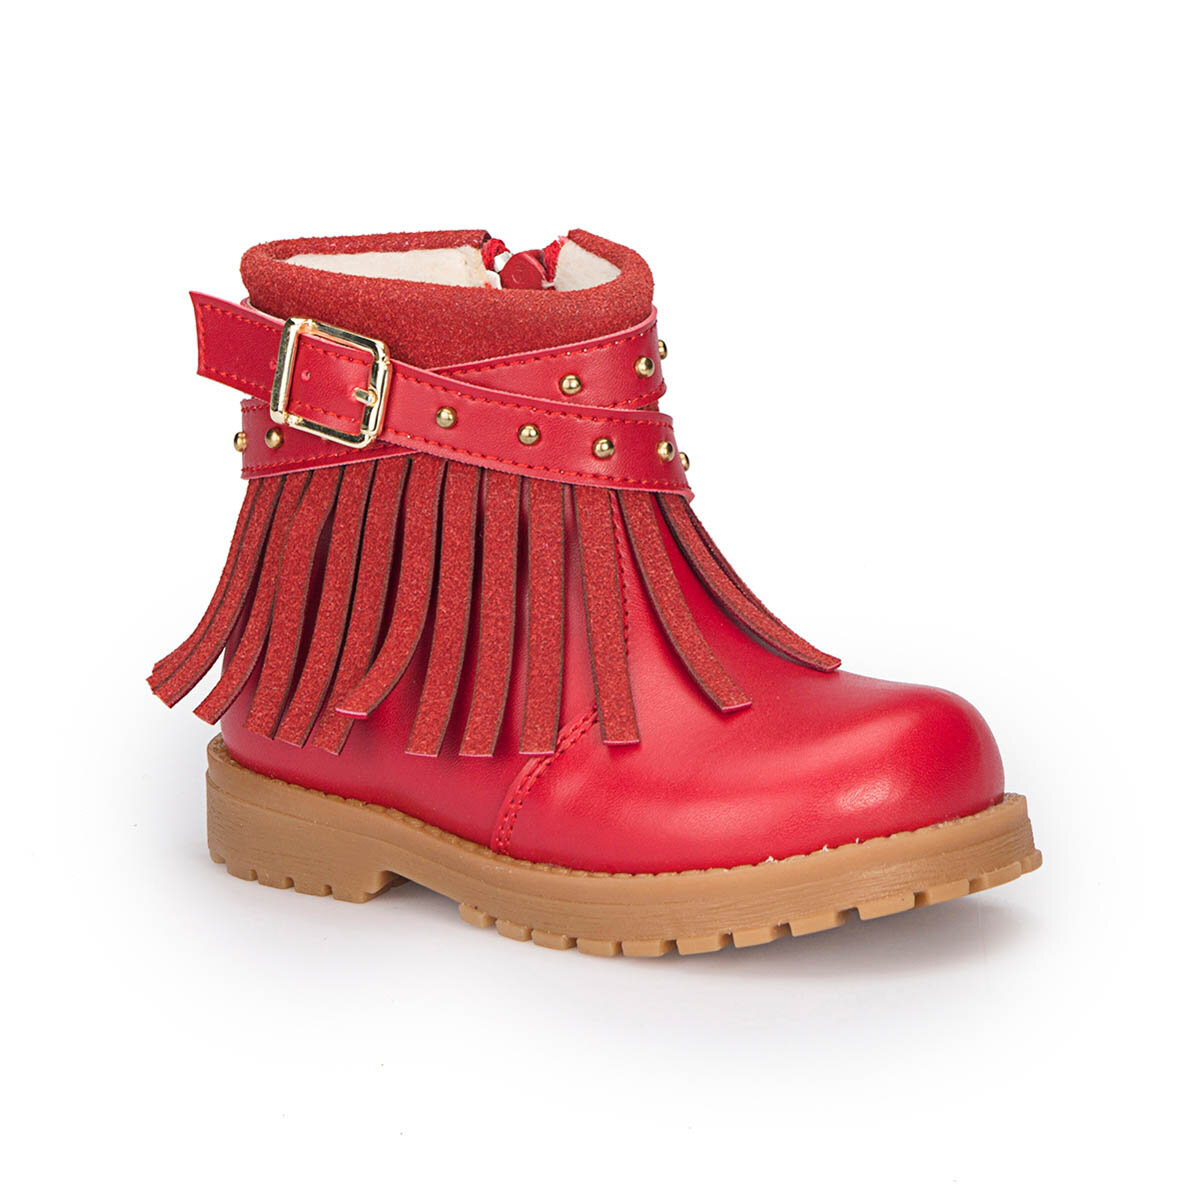 FLO 72.509538.B Red Female Child Boots Polaris